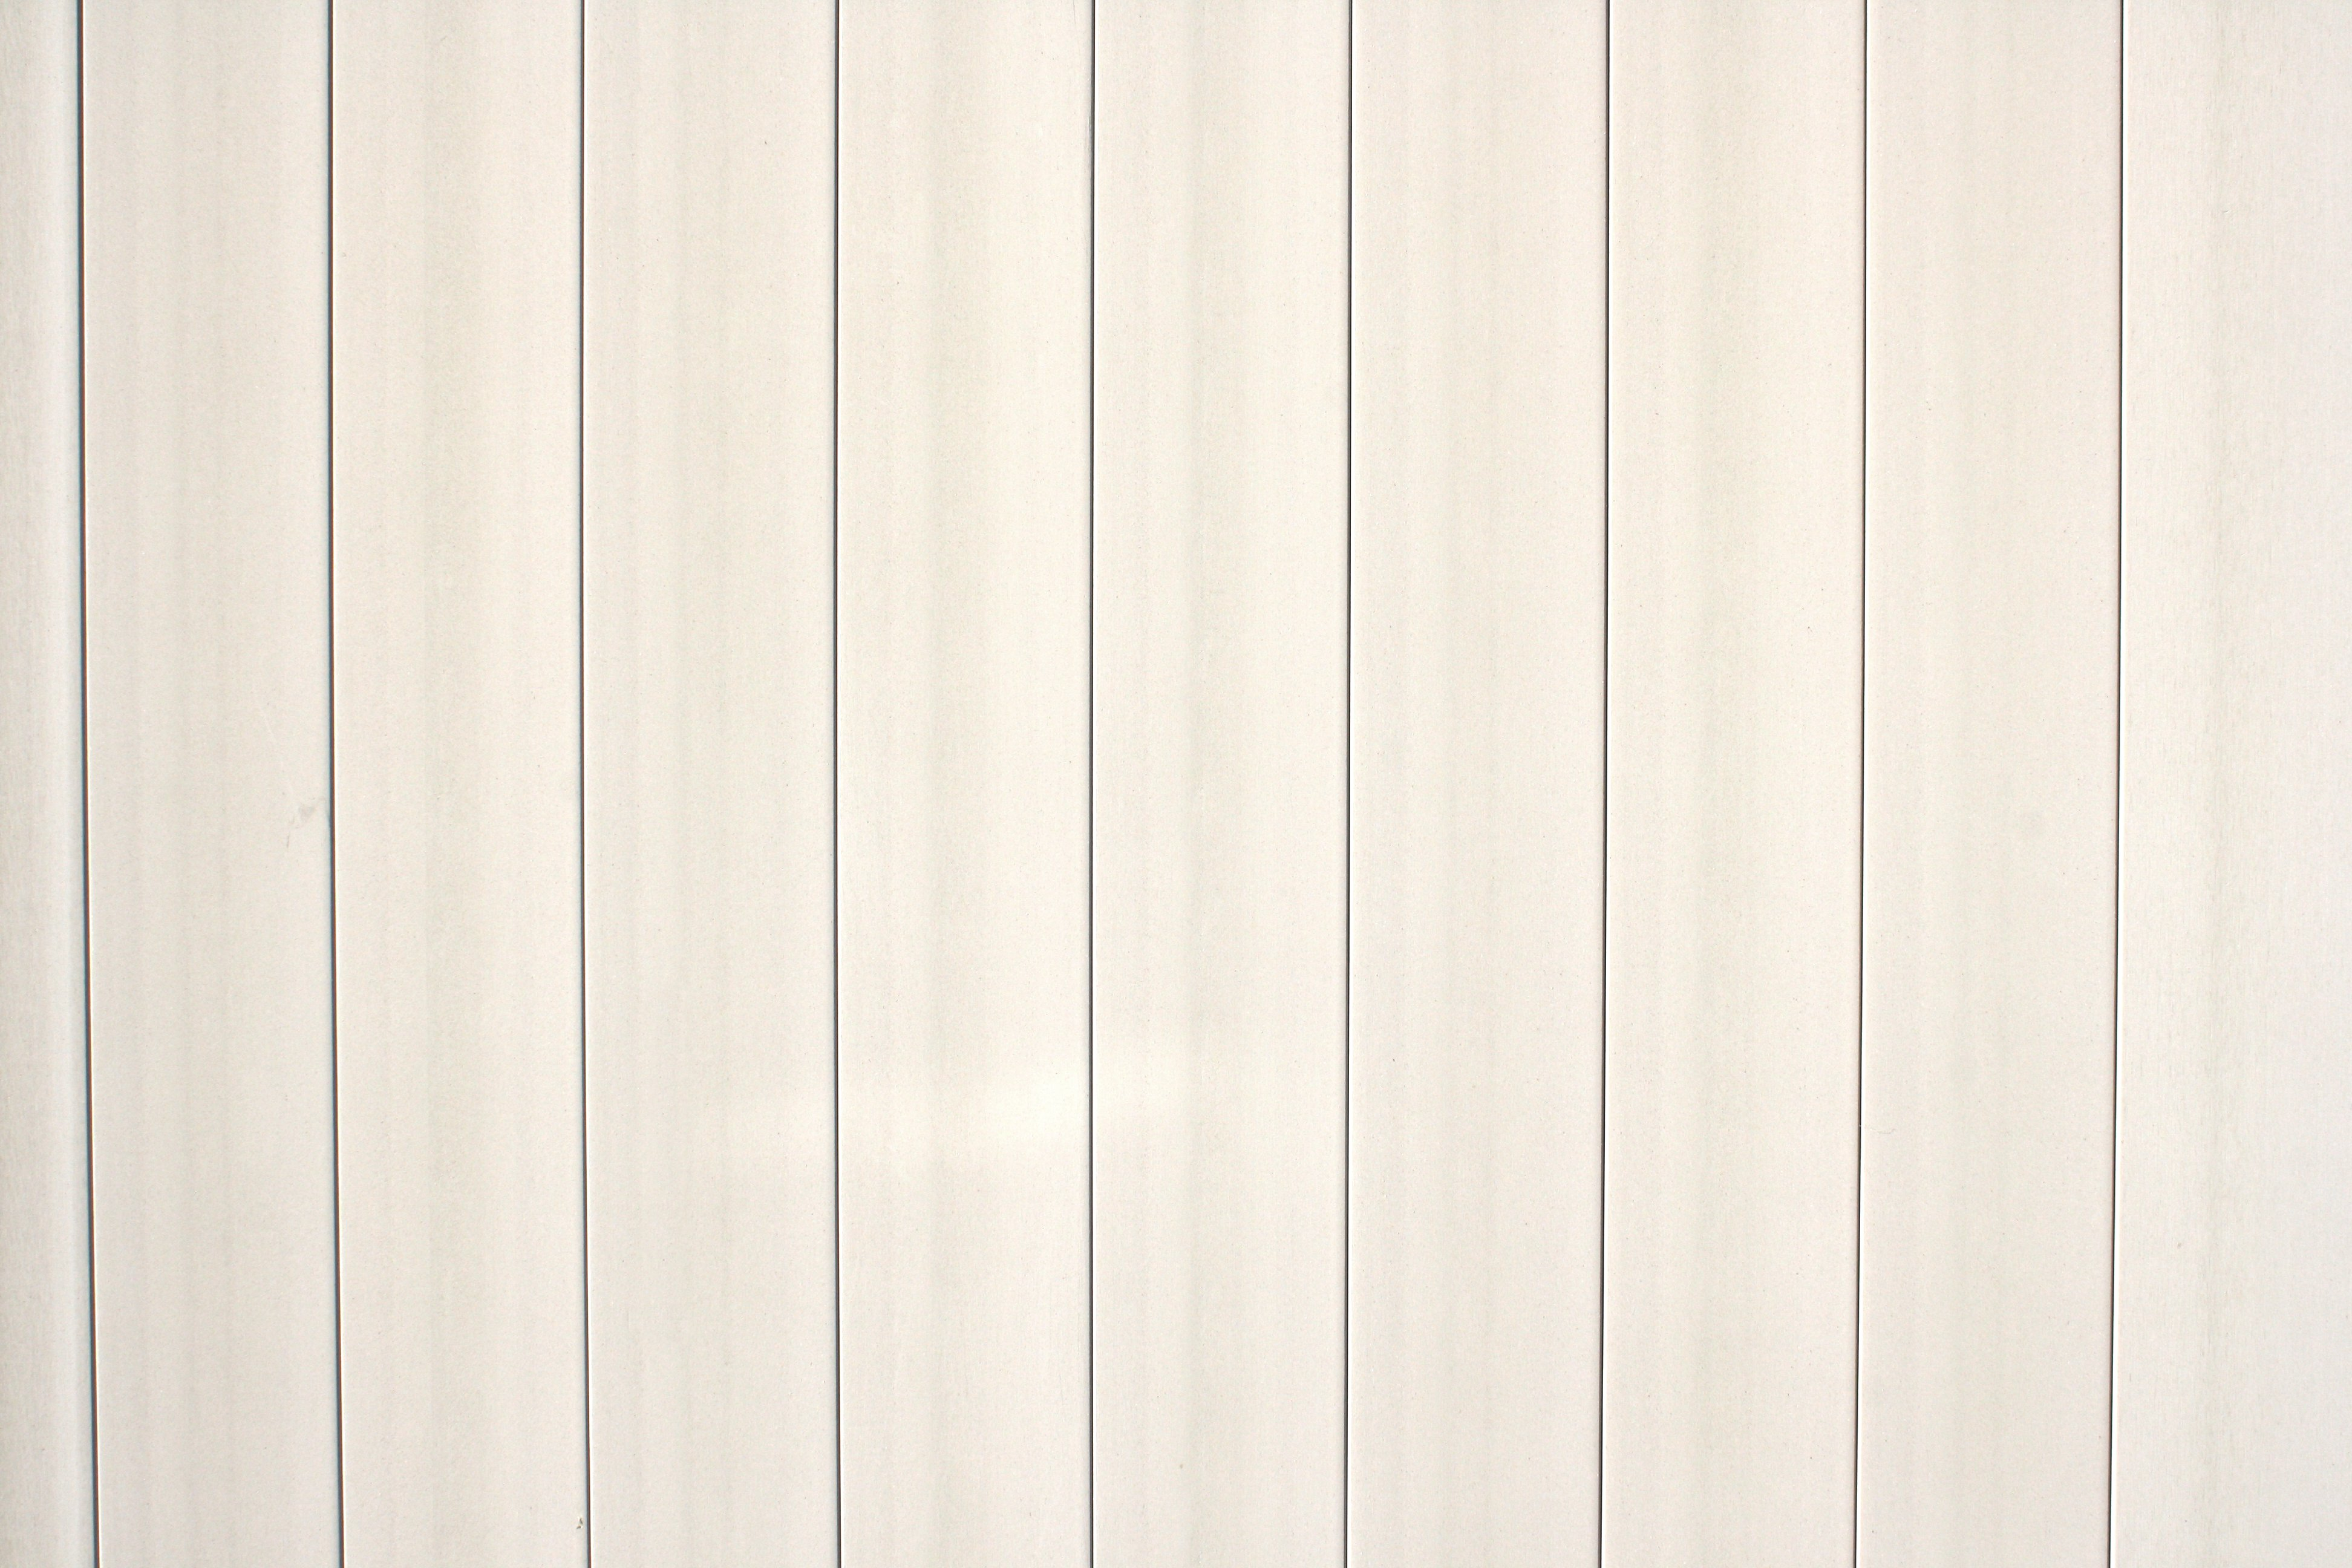 White Plastic Fence Boards Texture Picture Free